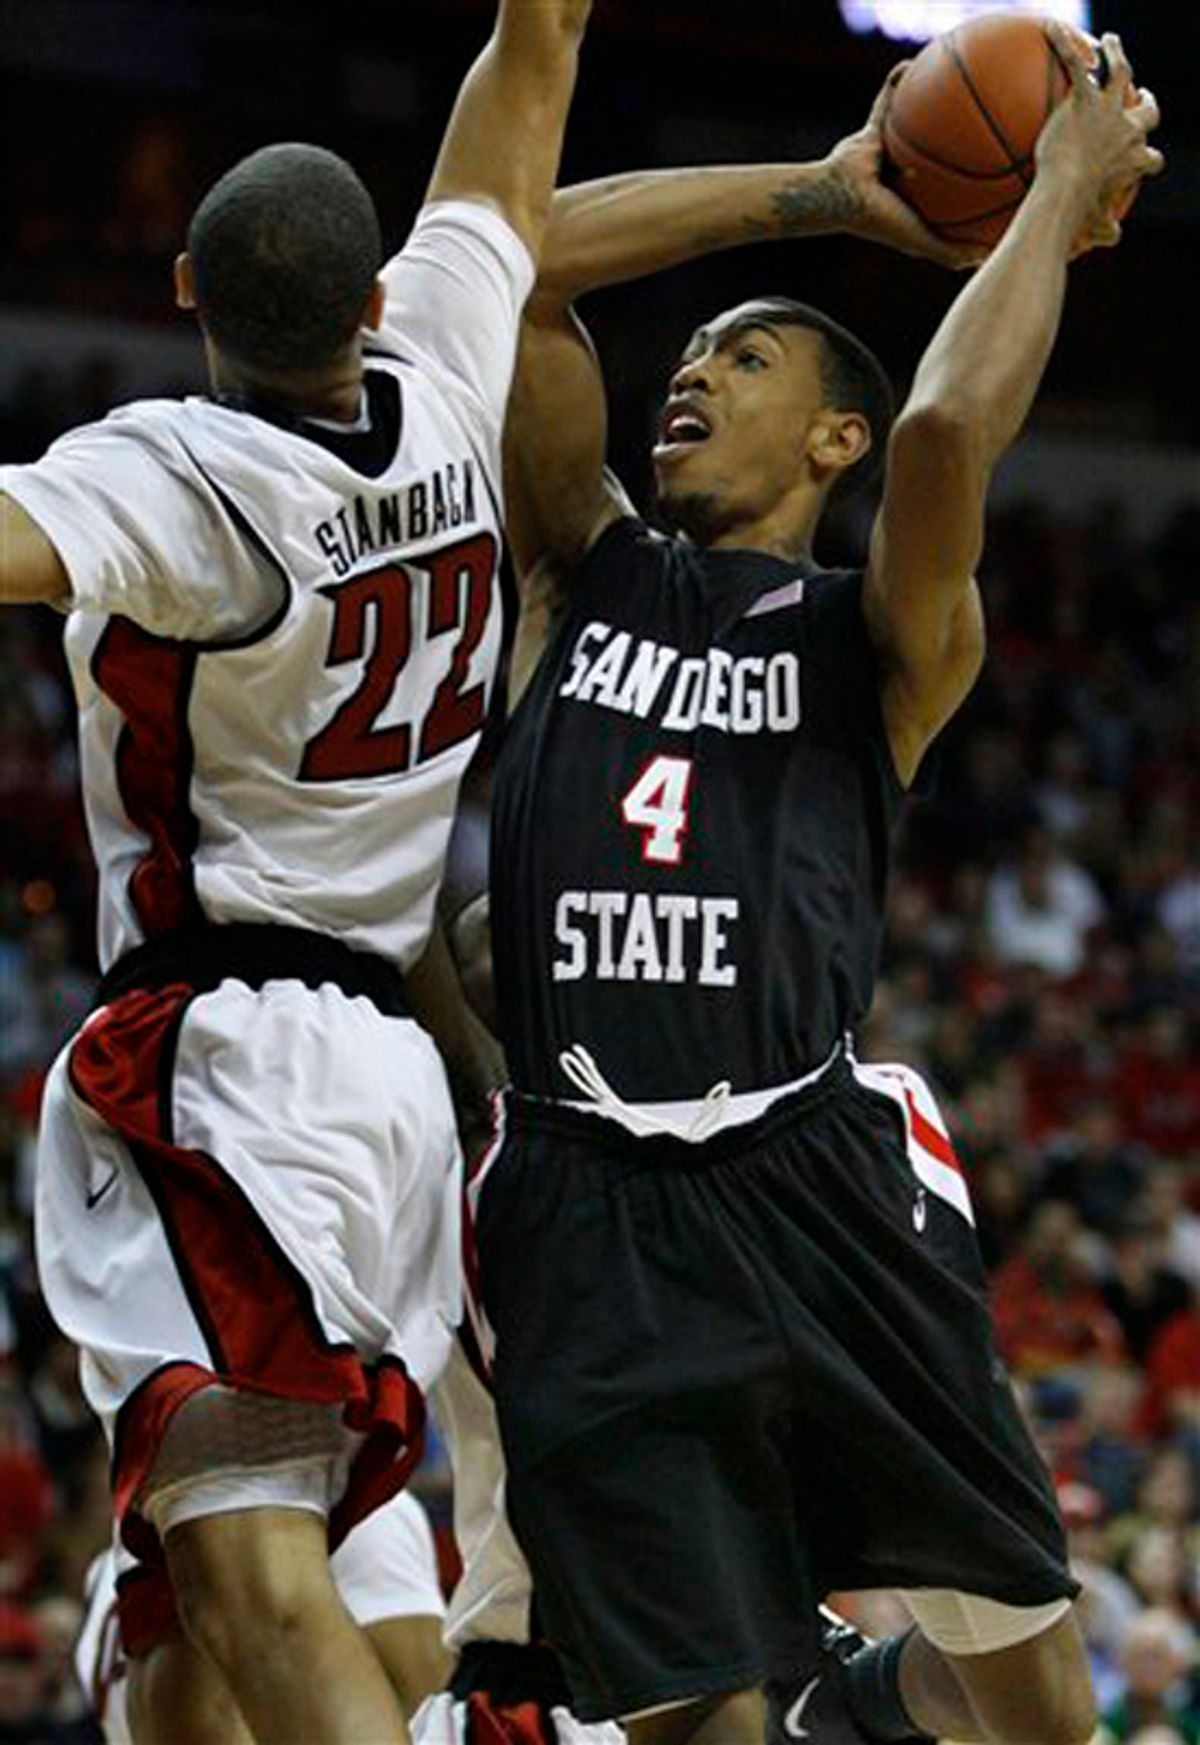 San Diego State's Malcolm Thomas tries to shoot over UNLV's Chace Stanback during an NCAA college basketball game at the Mountain West tournament finals in Las Vegas on Saturday, March 13, 2010. San Diego State defeated UNLV for the championship title. (AP Photo/Laura Rauch) (Laura Rauch)